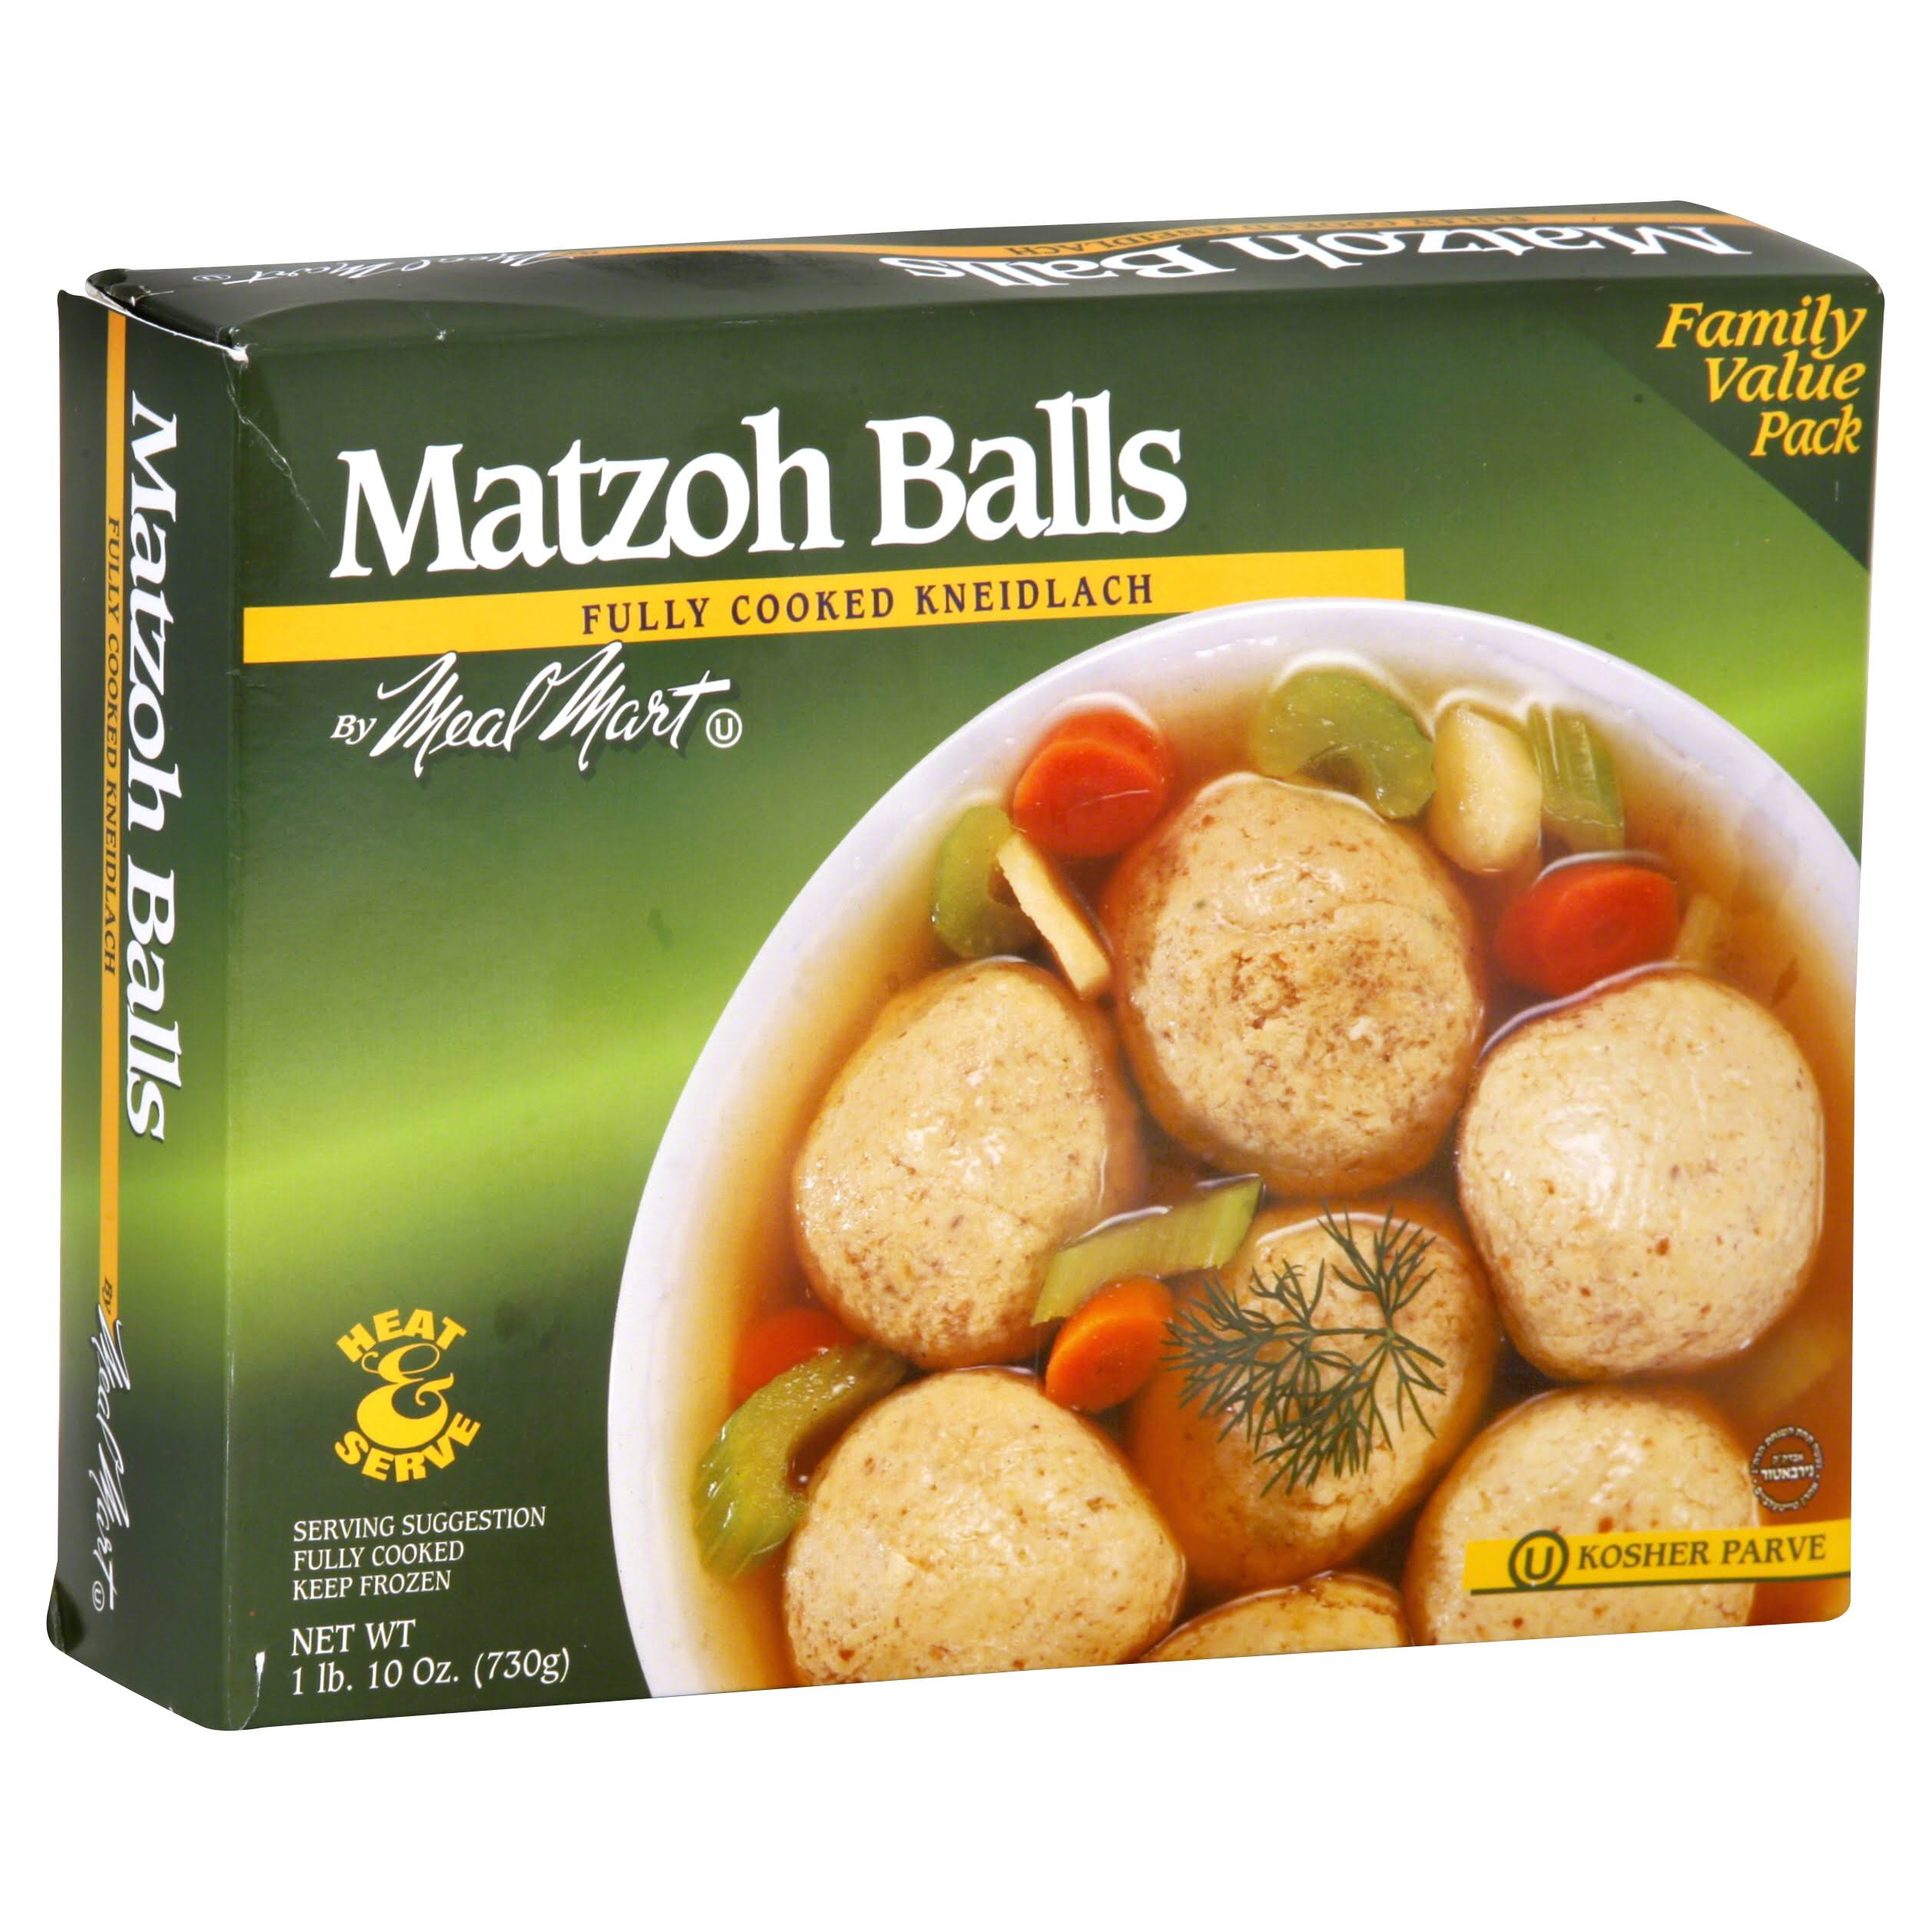 Meal Mart Matzoh Balls, Family Value Pack - 26 oz